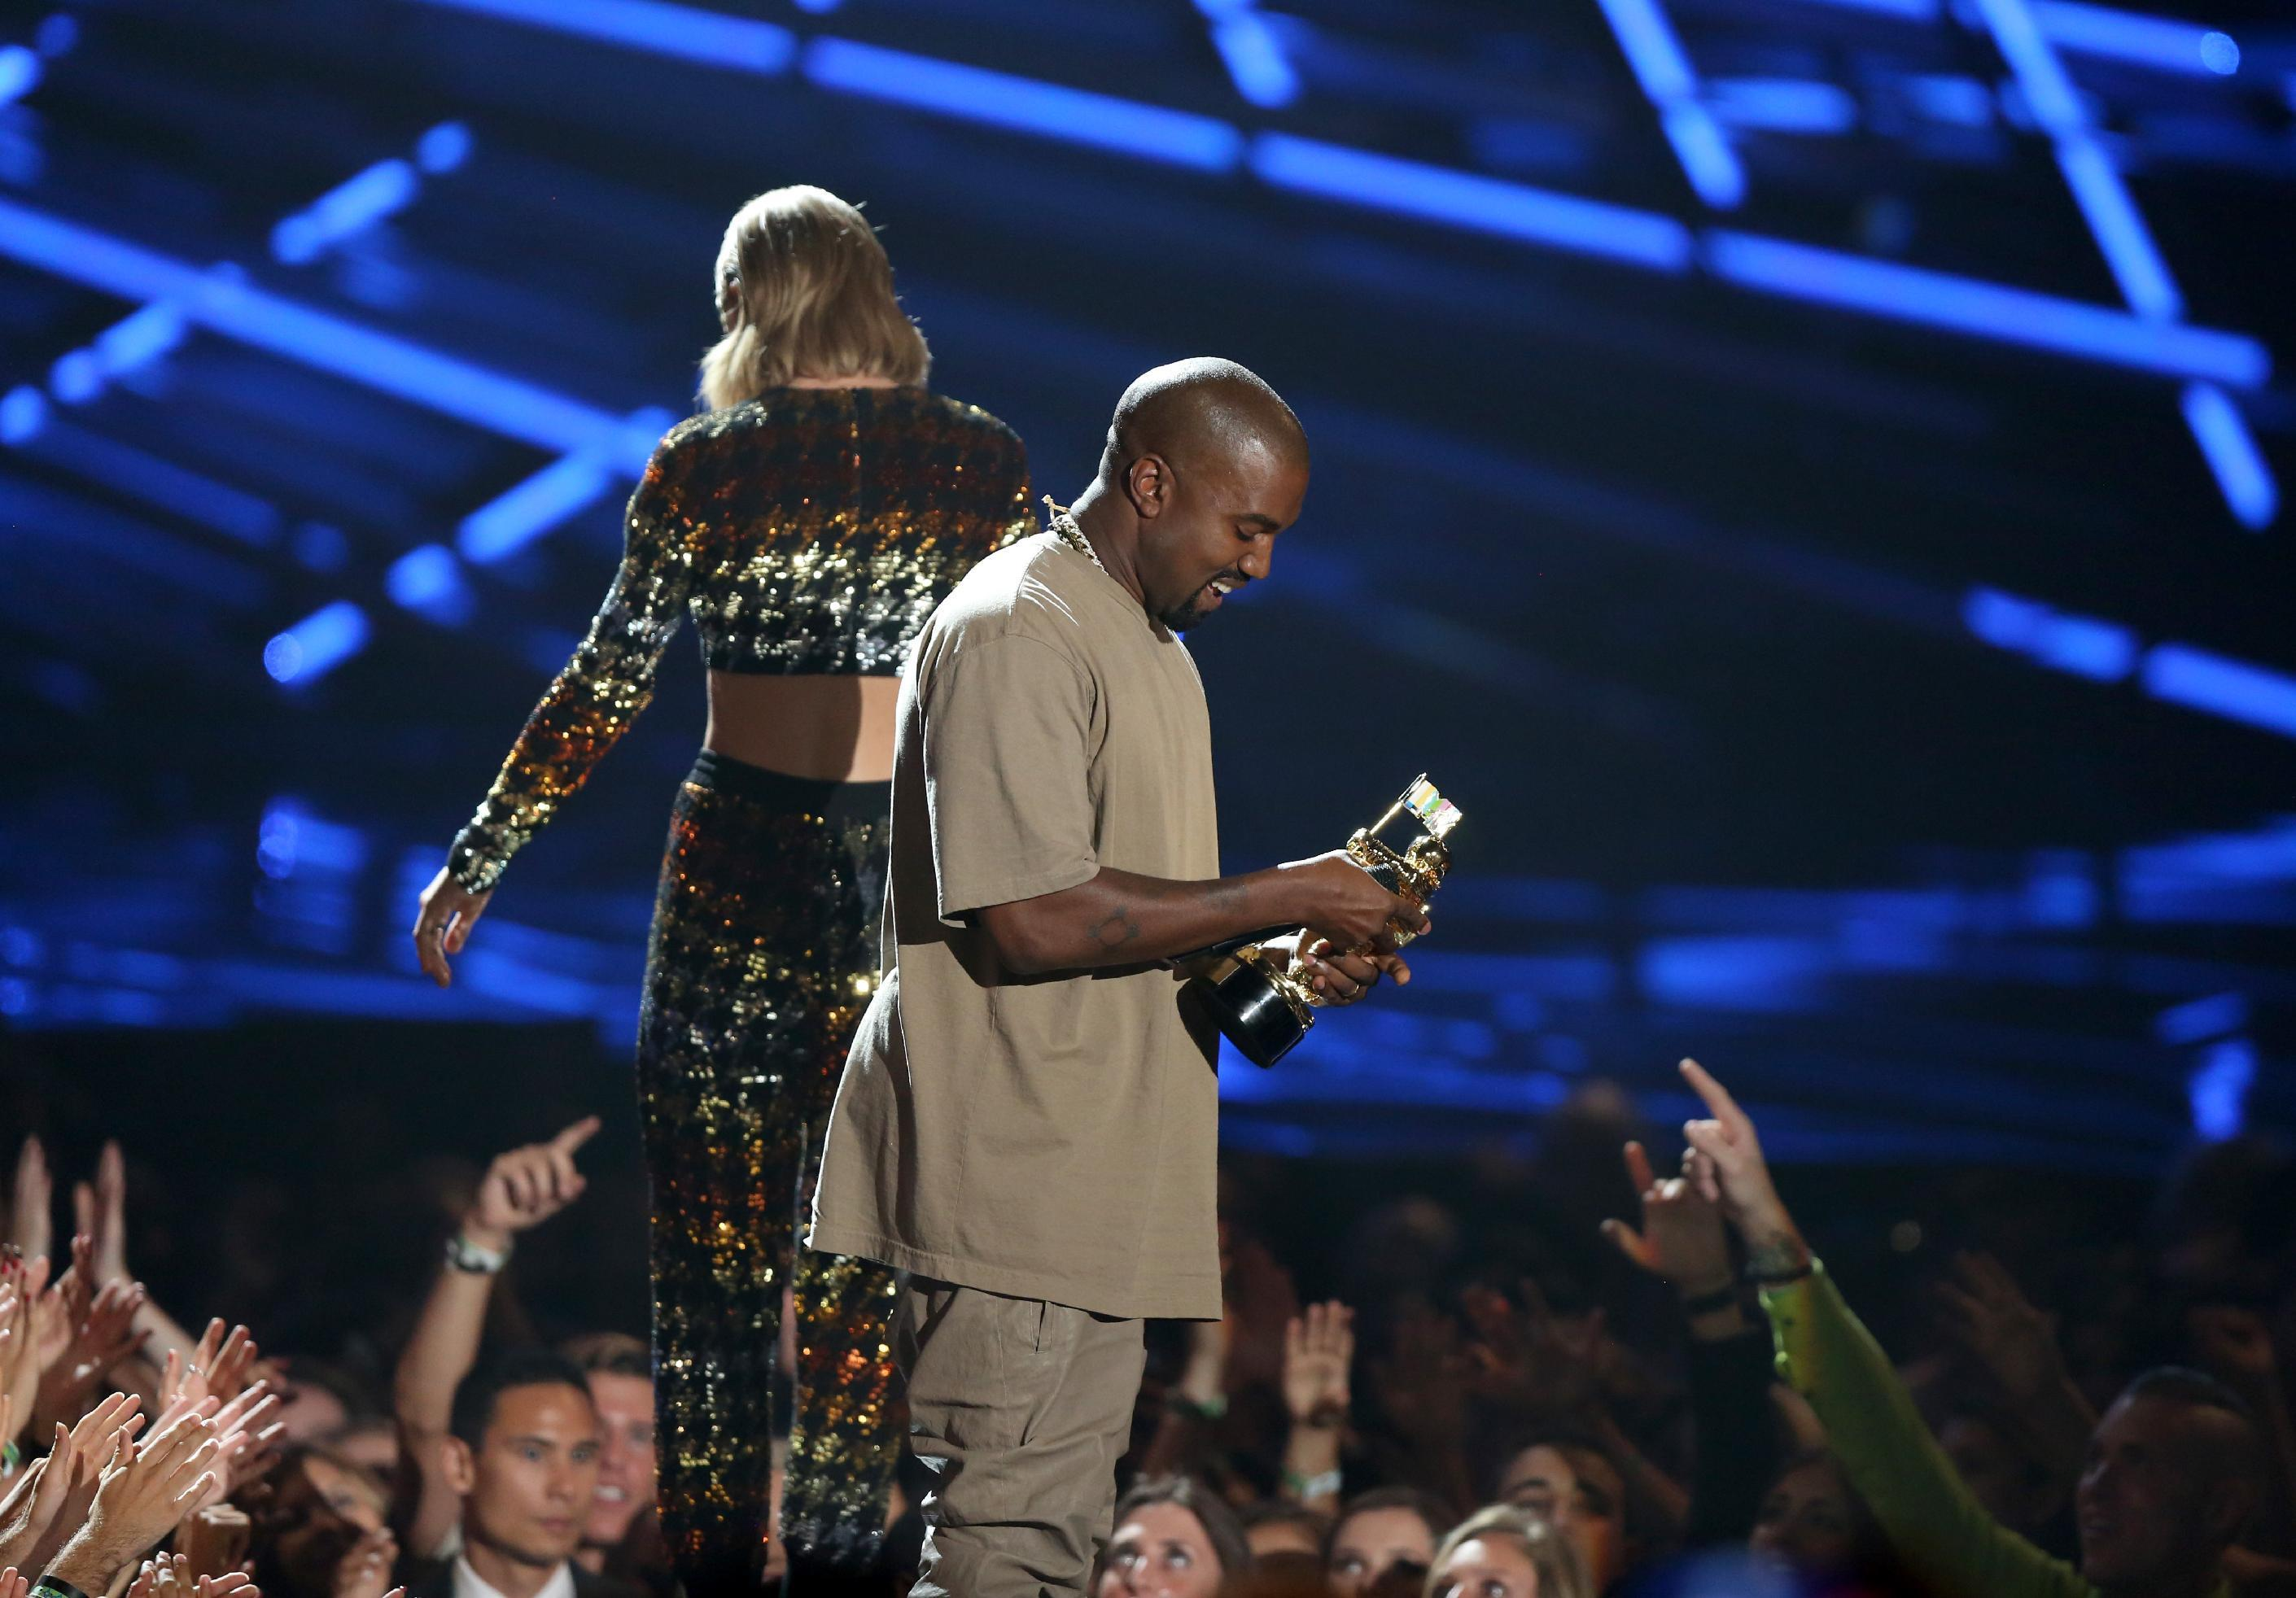 MTV VMA memorable moments from Kanye to Miley